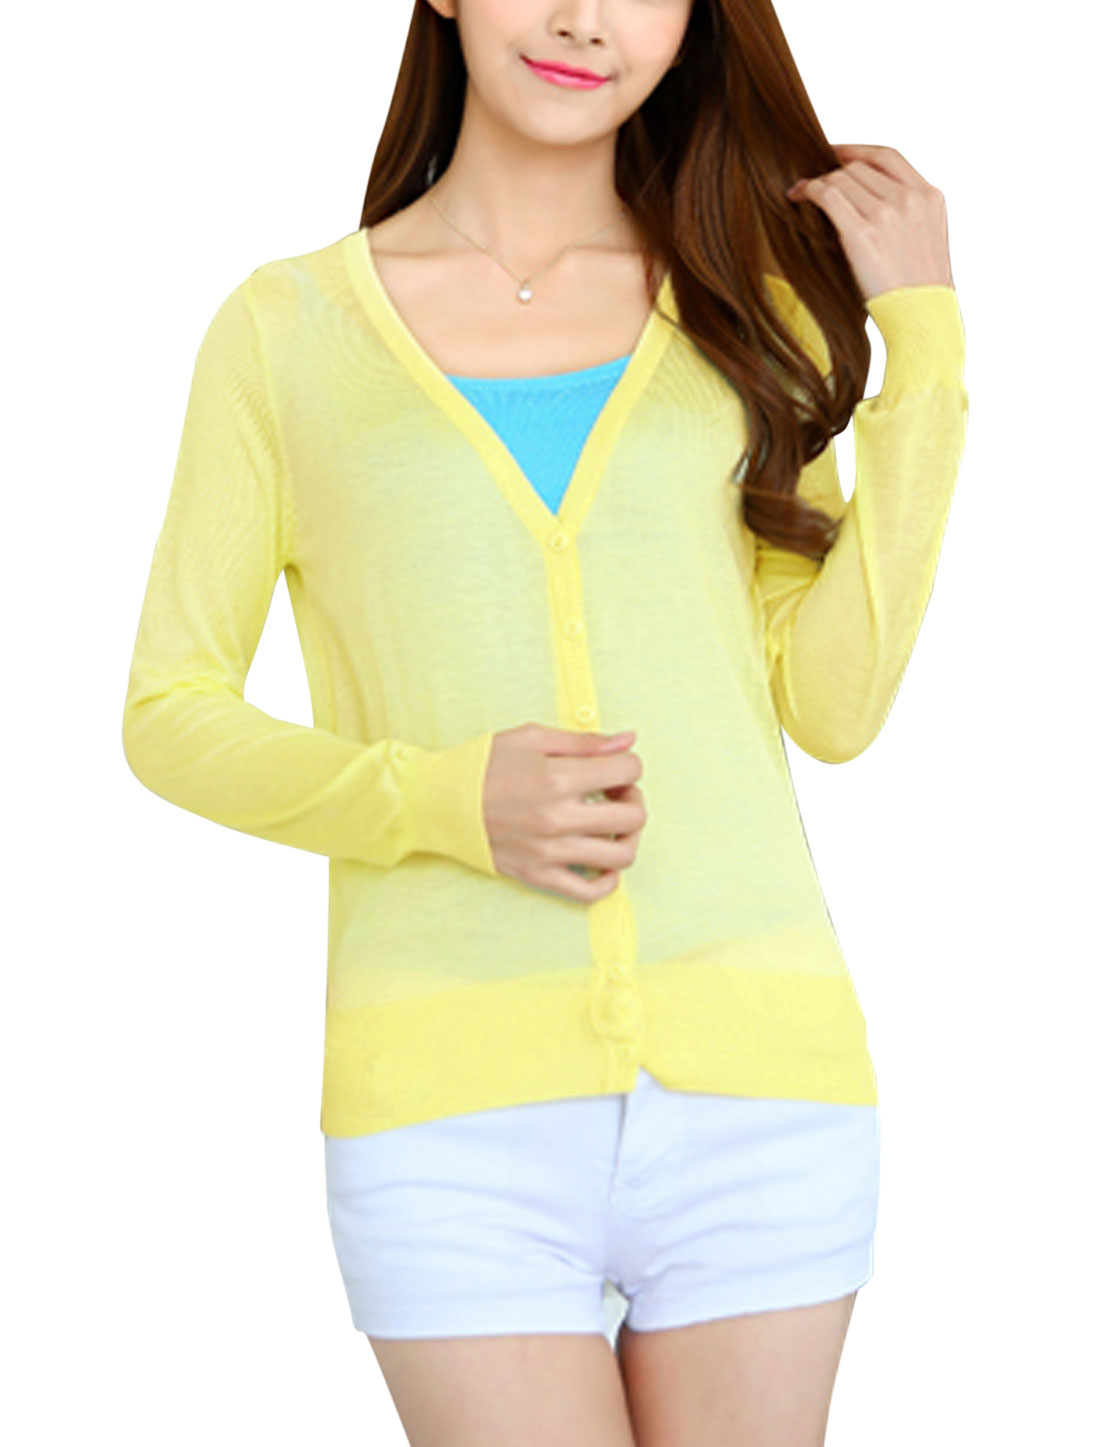 Woman Button Closure Long Sleeves Slim Fit Knit Cardigan Light Yellow XS